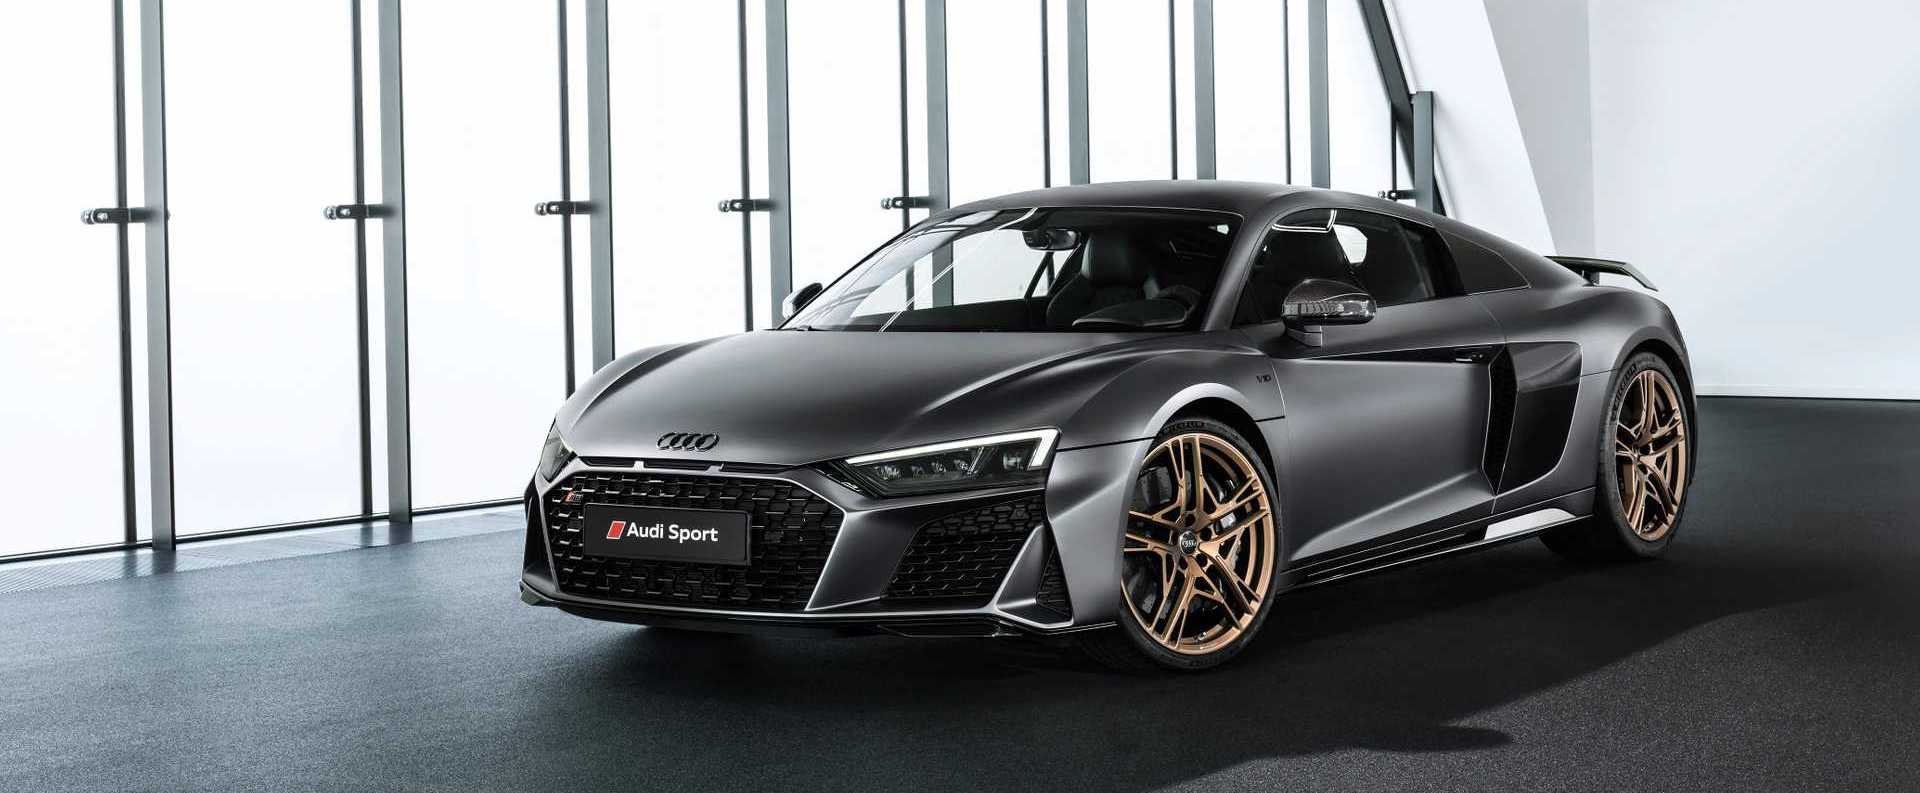 Audi R8 V10 Decennium Celebrates 10 Years Of The 5.2 FSI